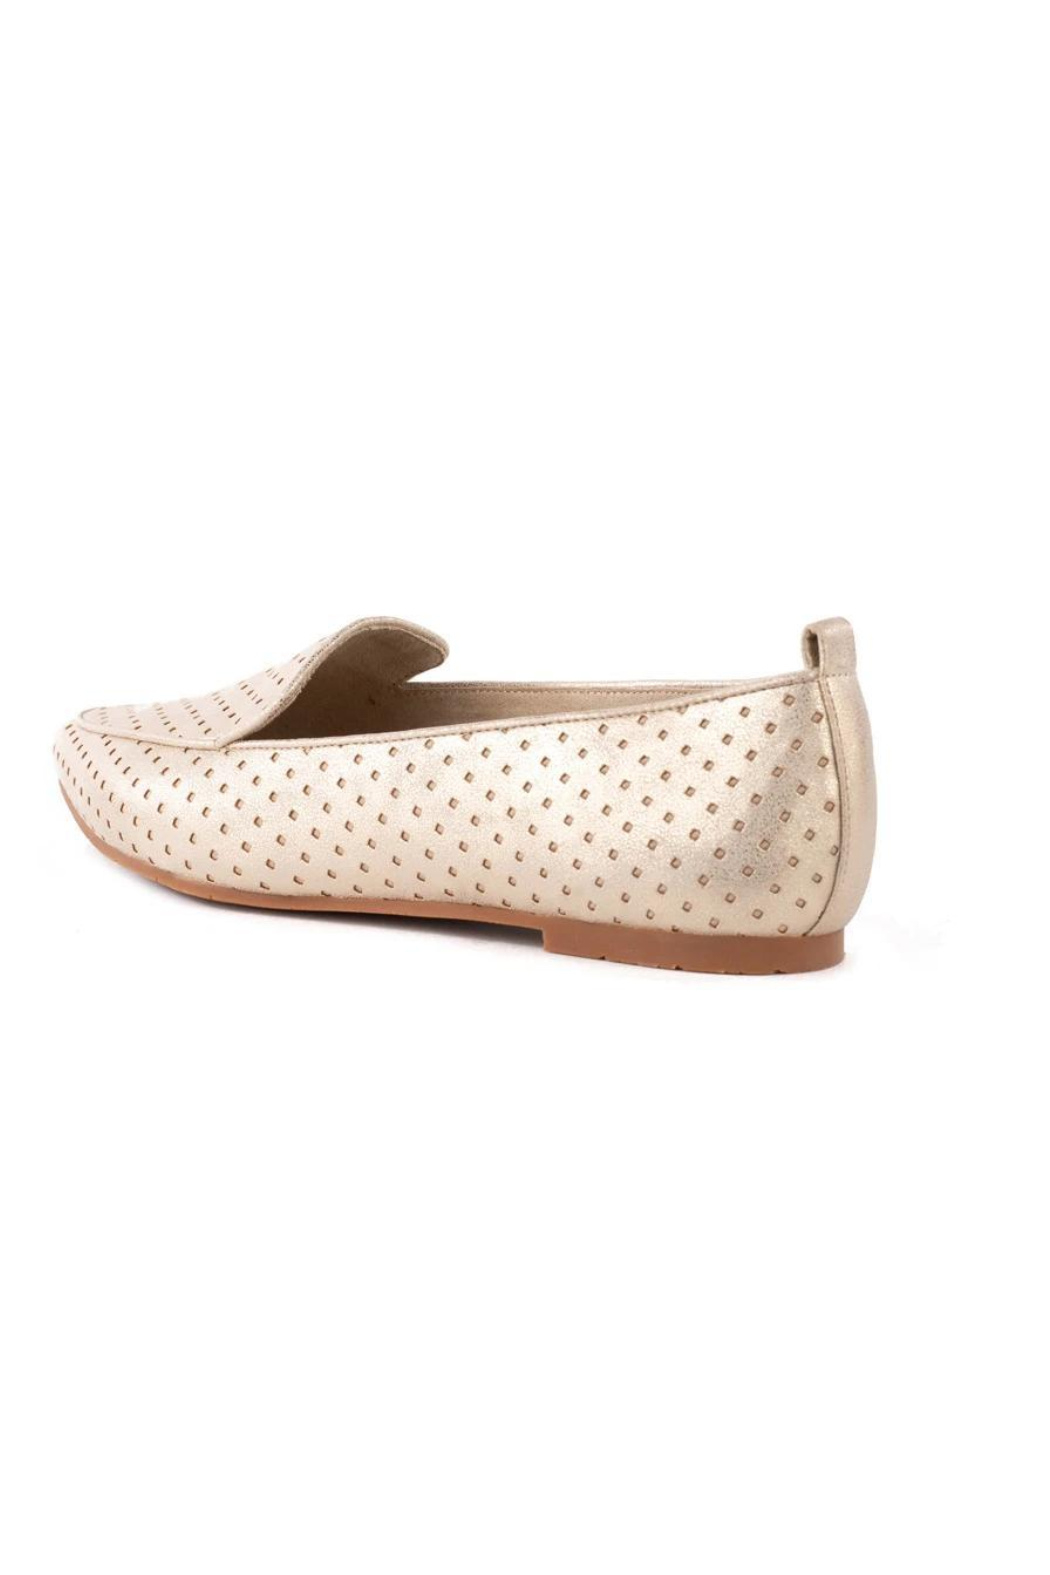 BC Footwear It's Time Flat - Side Cropped Image